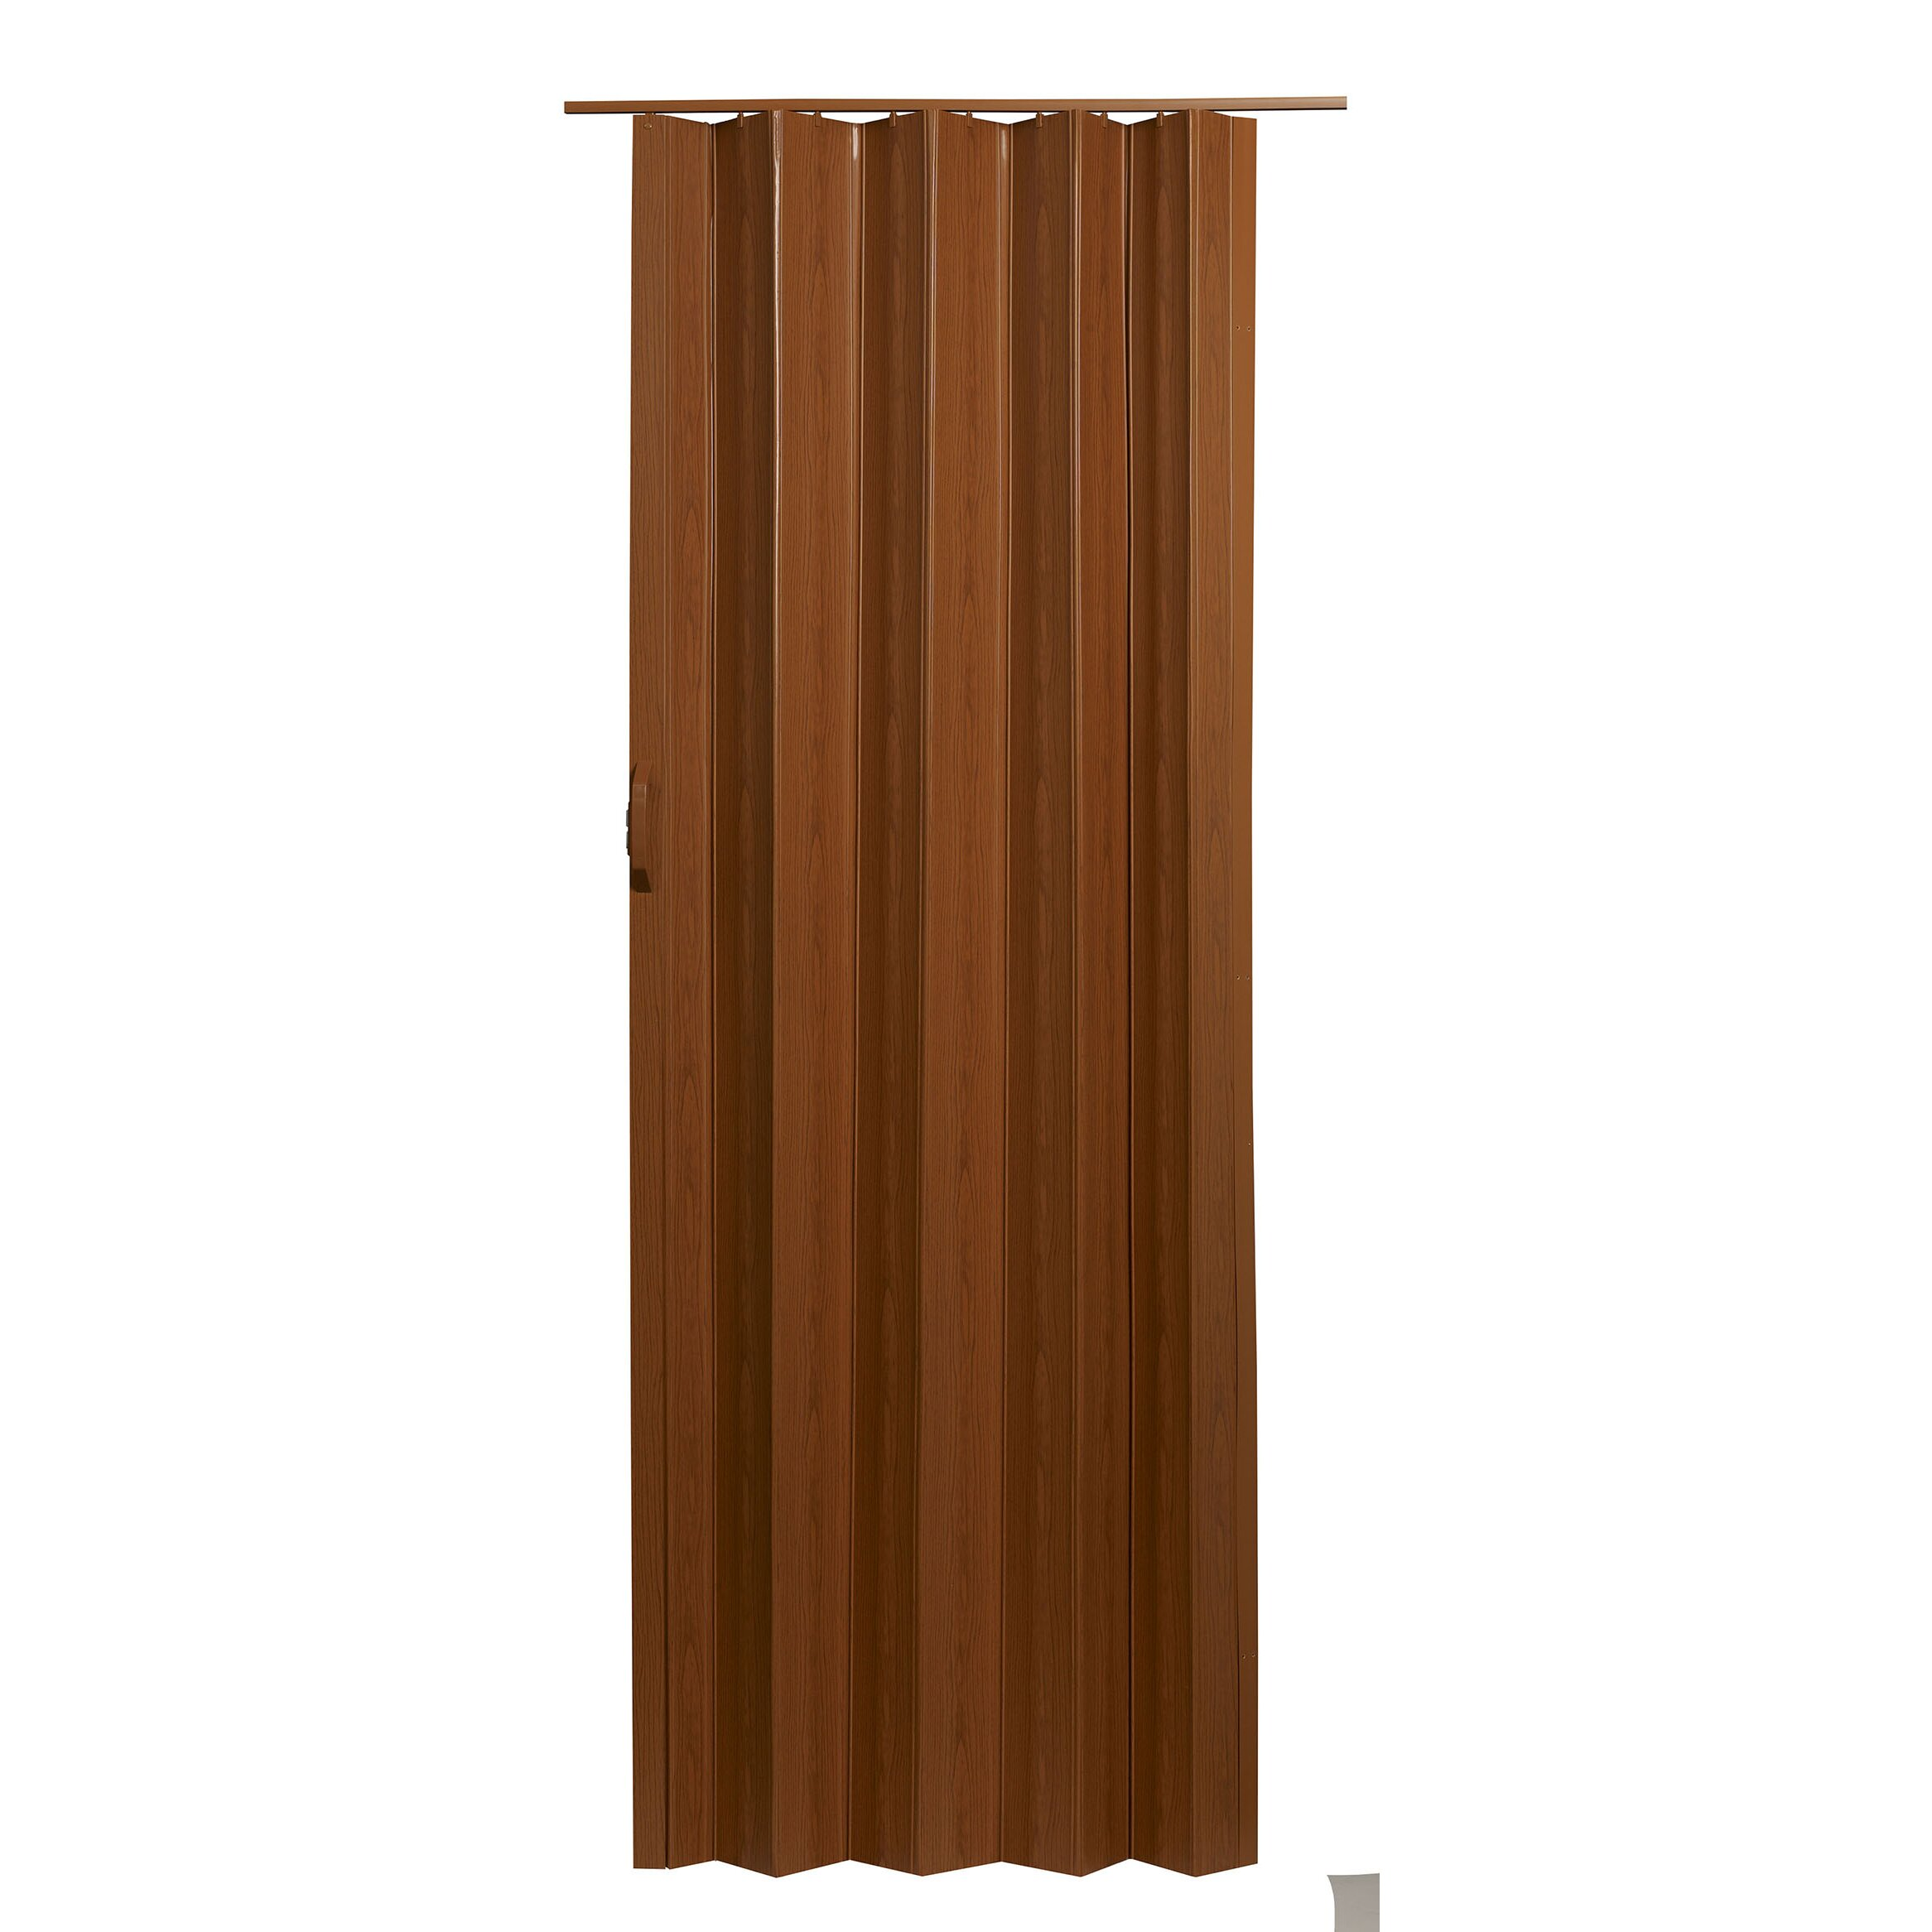 Plastic Interior Door 1 12 28 Images Pvc Bathroom Plastic Interior Door Design Buy Pvc Pvc